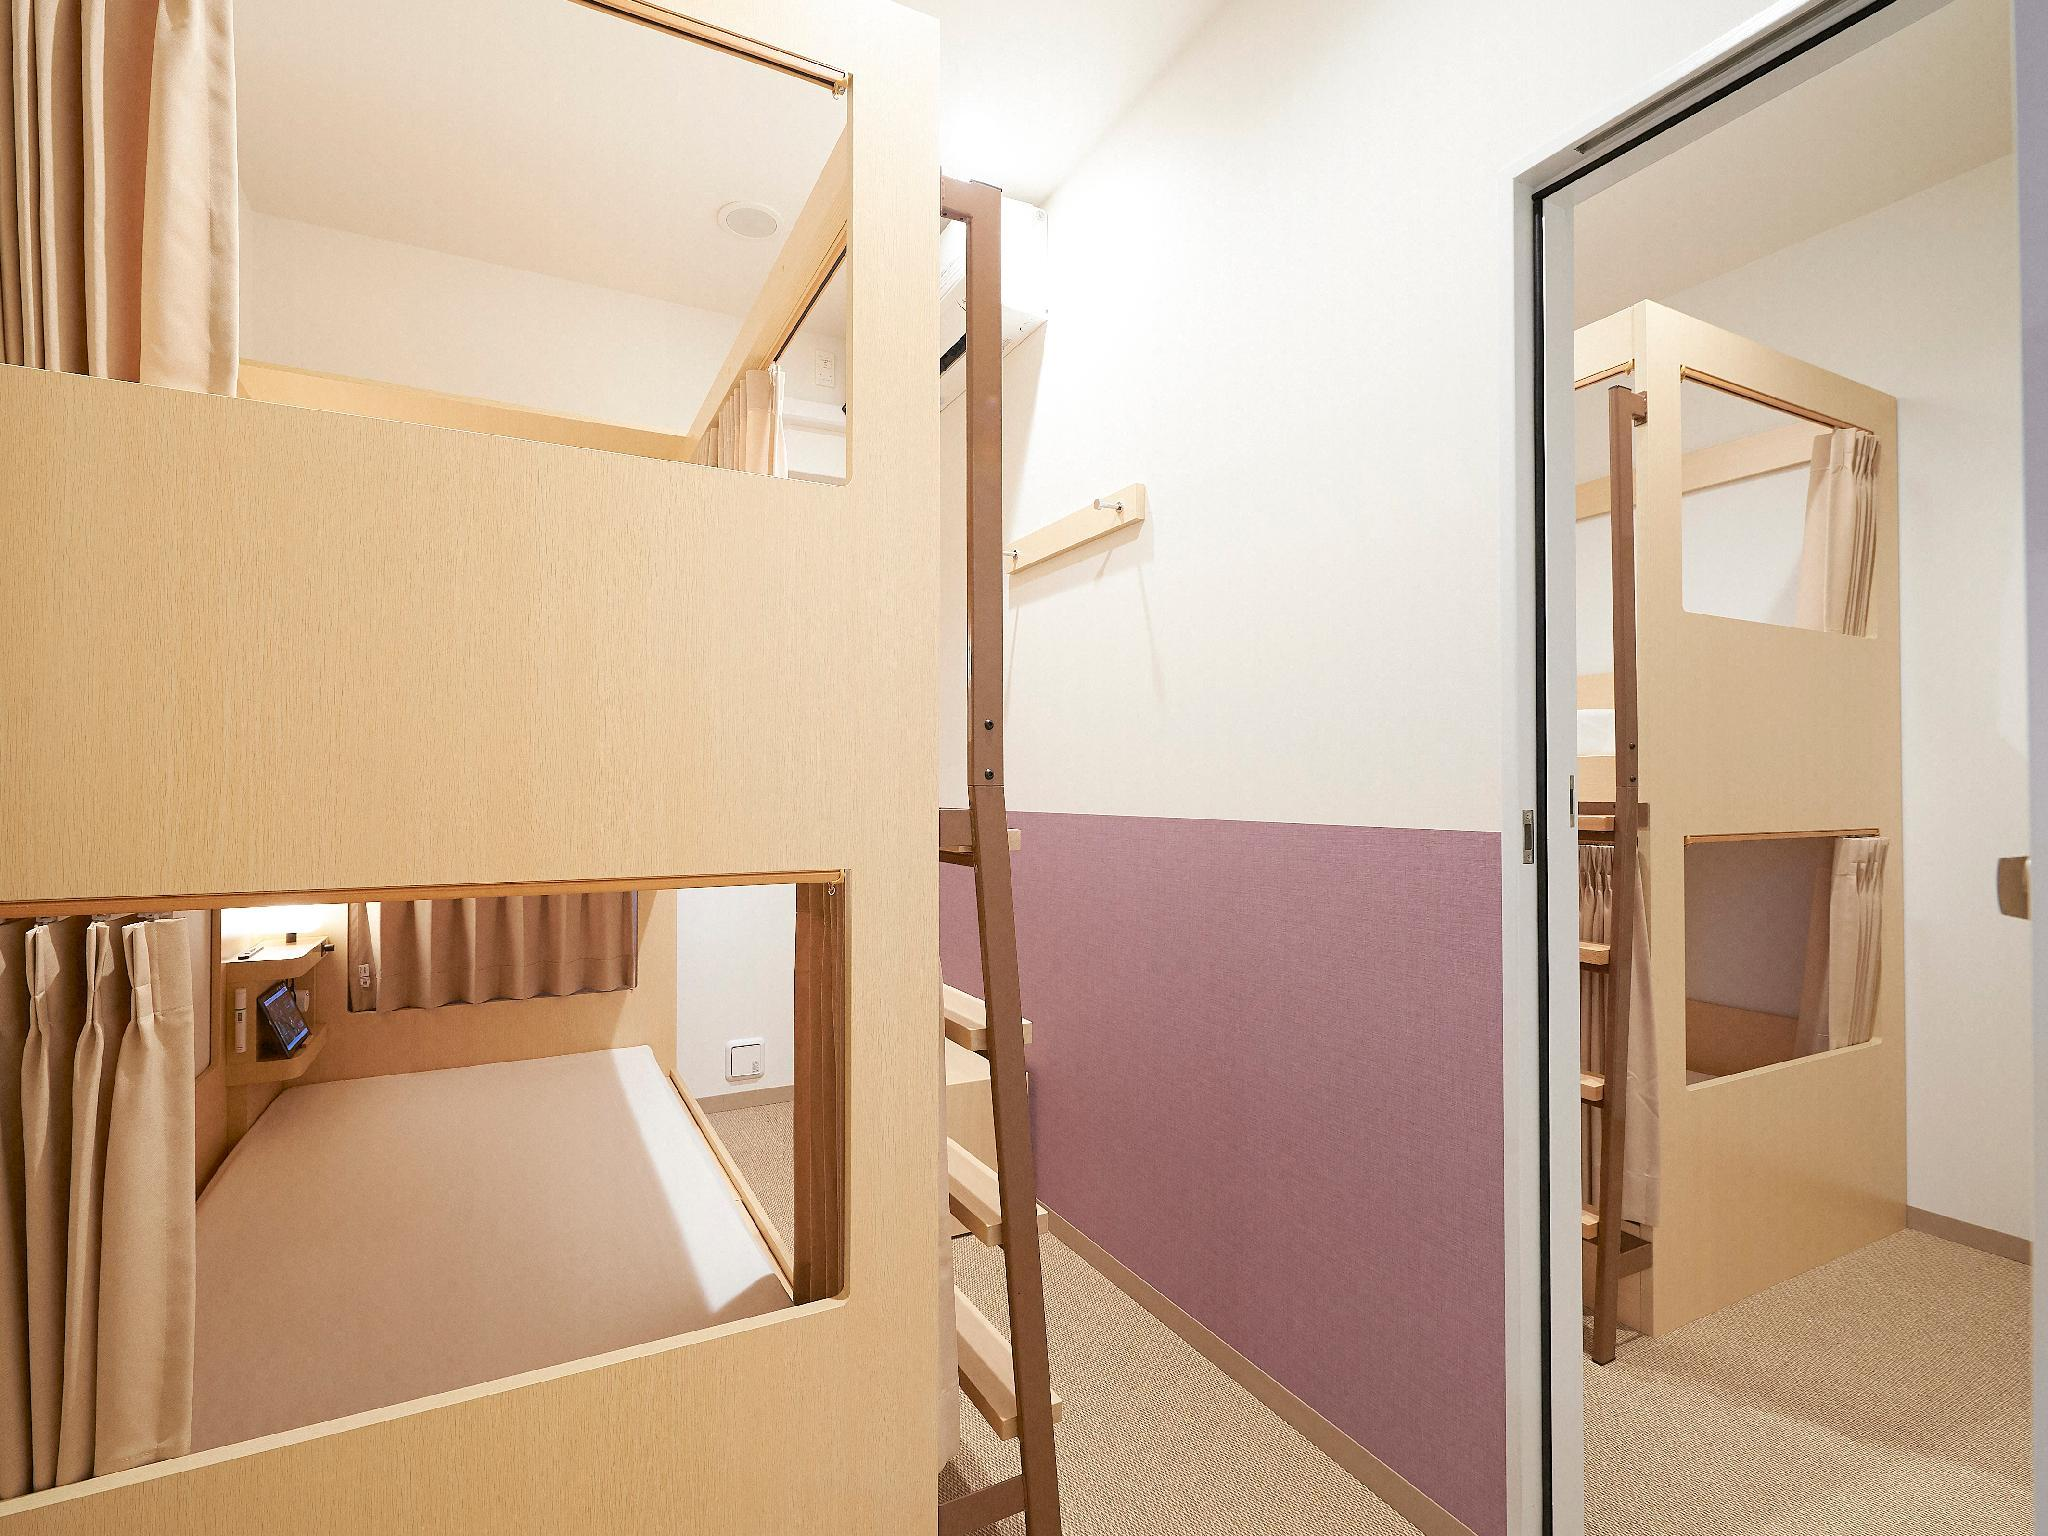 2 Connecting Rooms for 4 People with 2 Bunk Beds